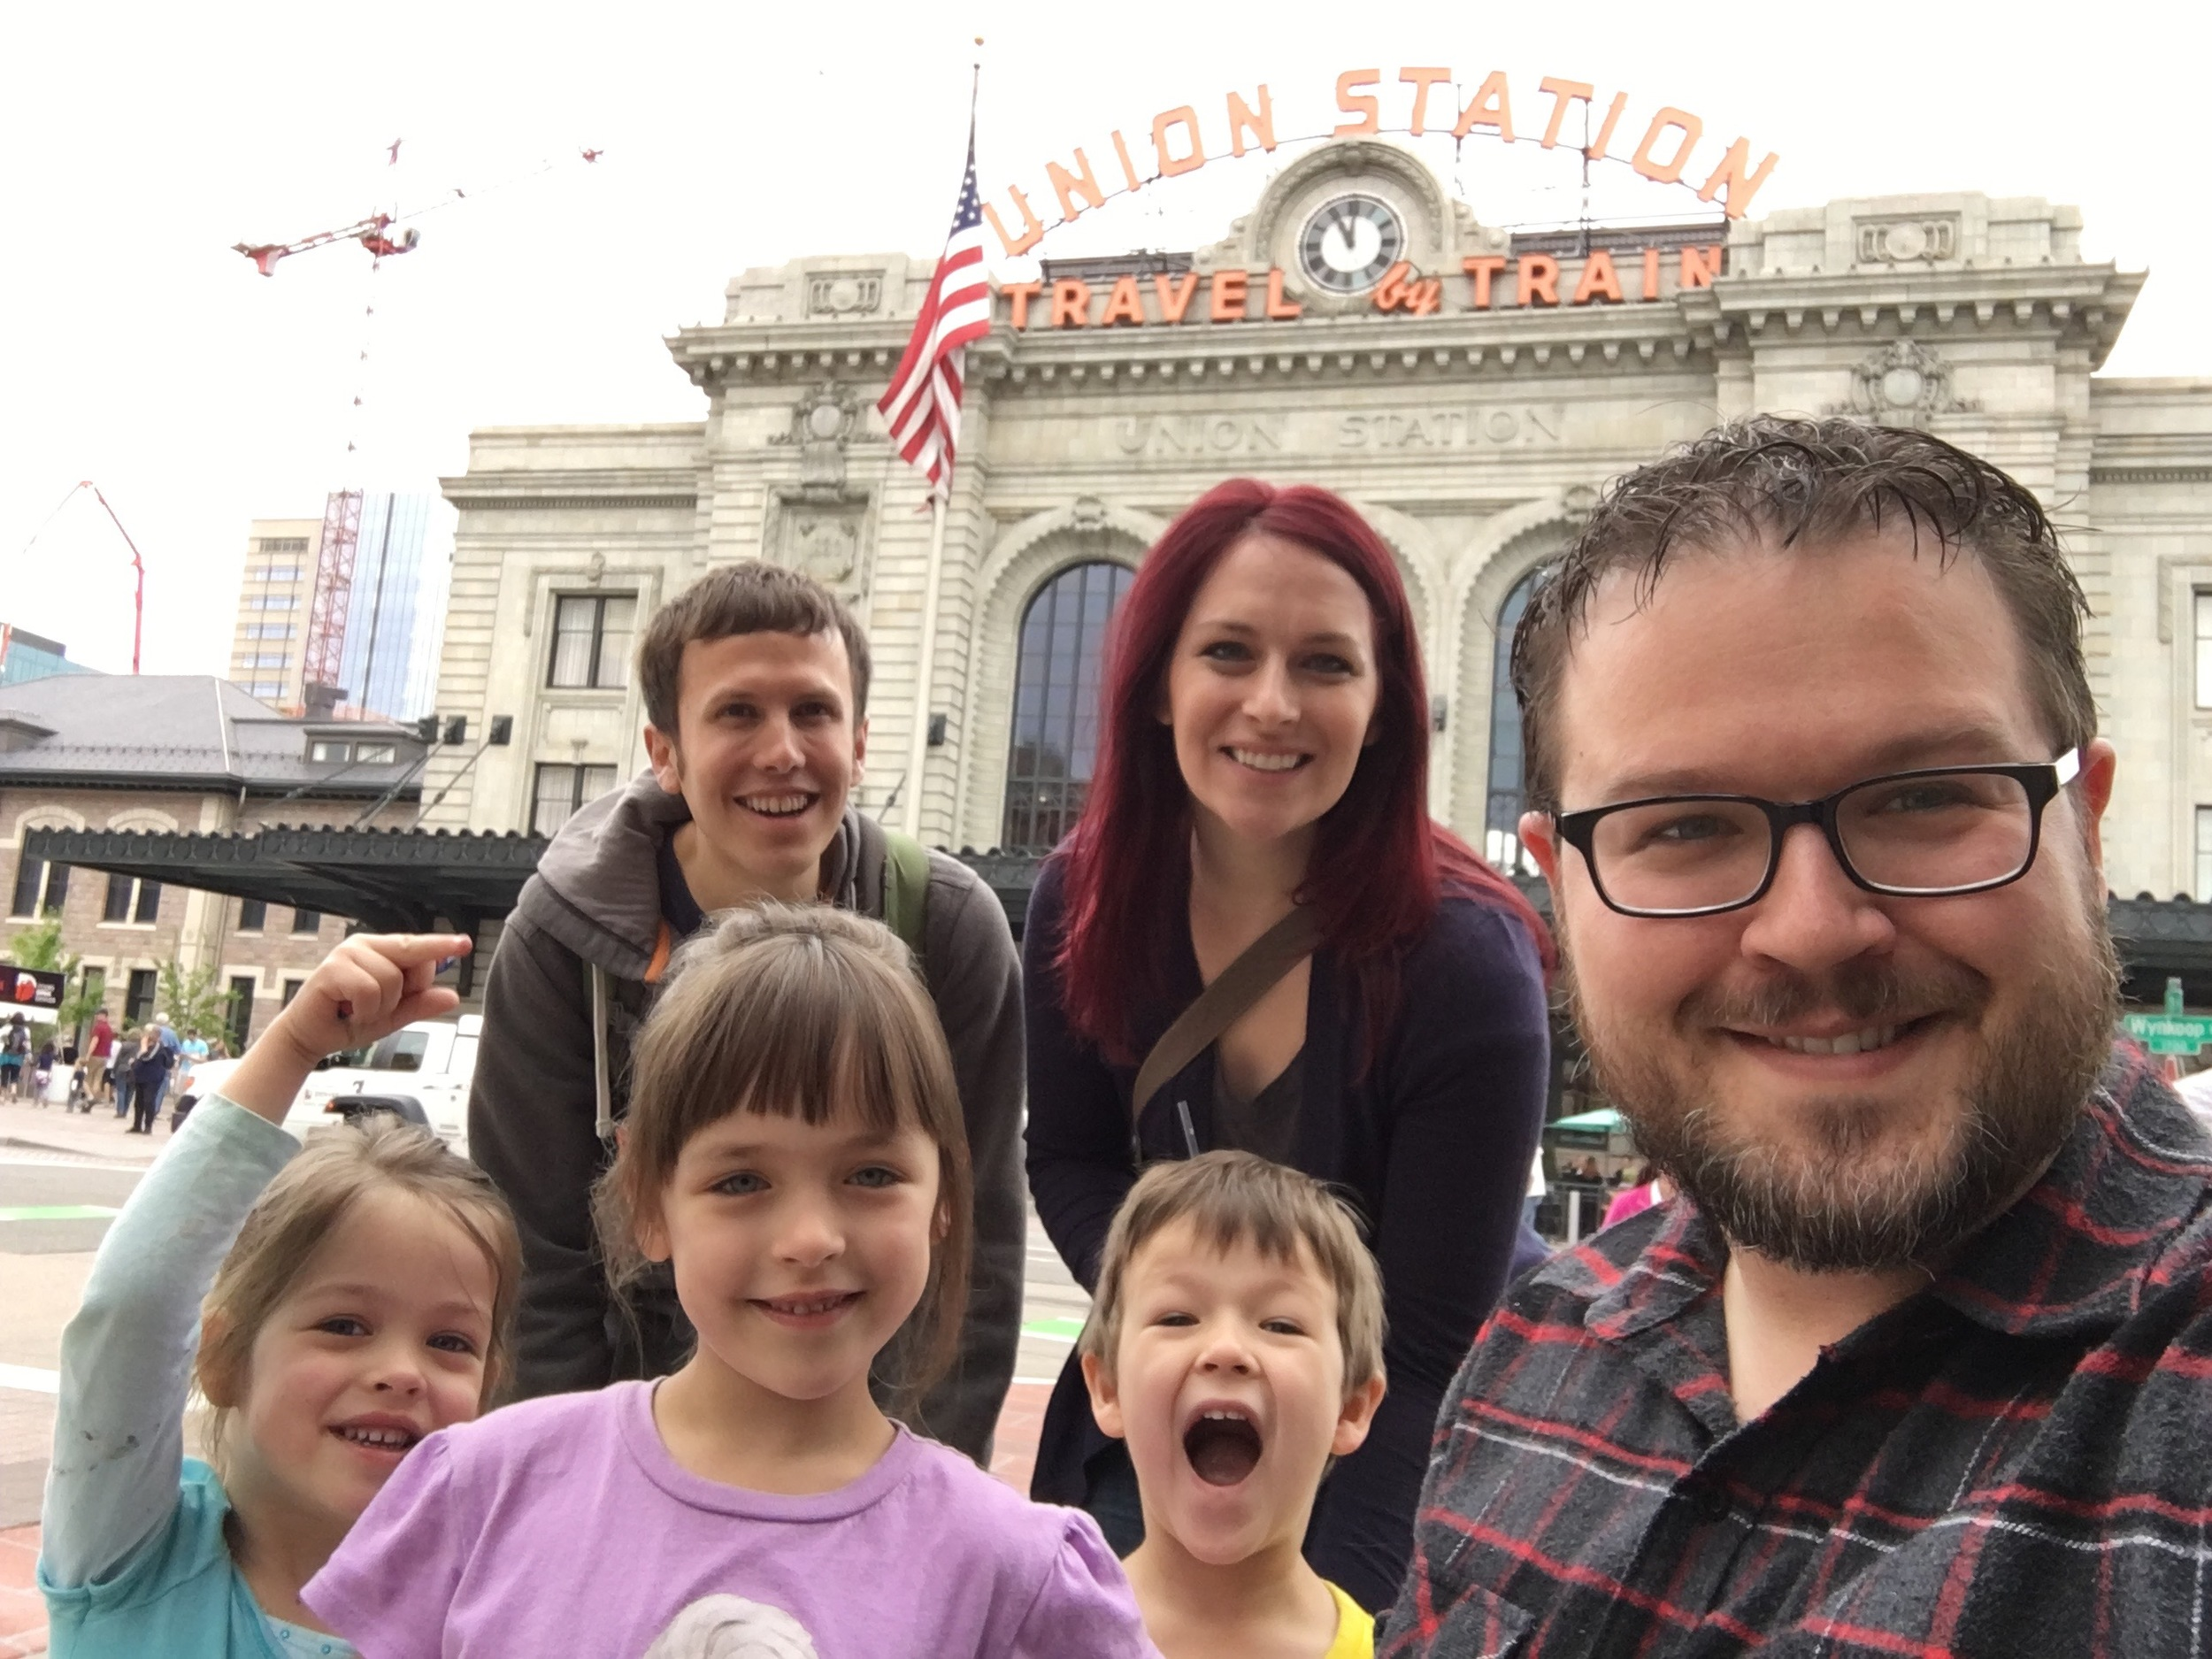 We were able to meet with Mr. Devin outside of the Union Station.